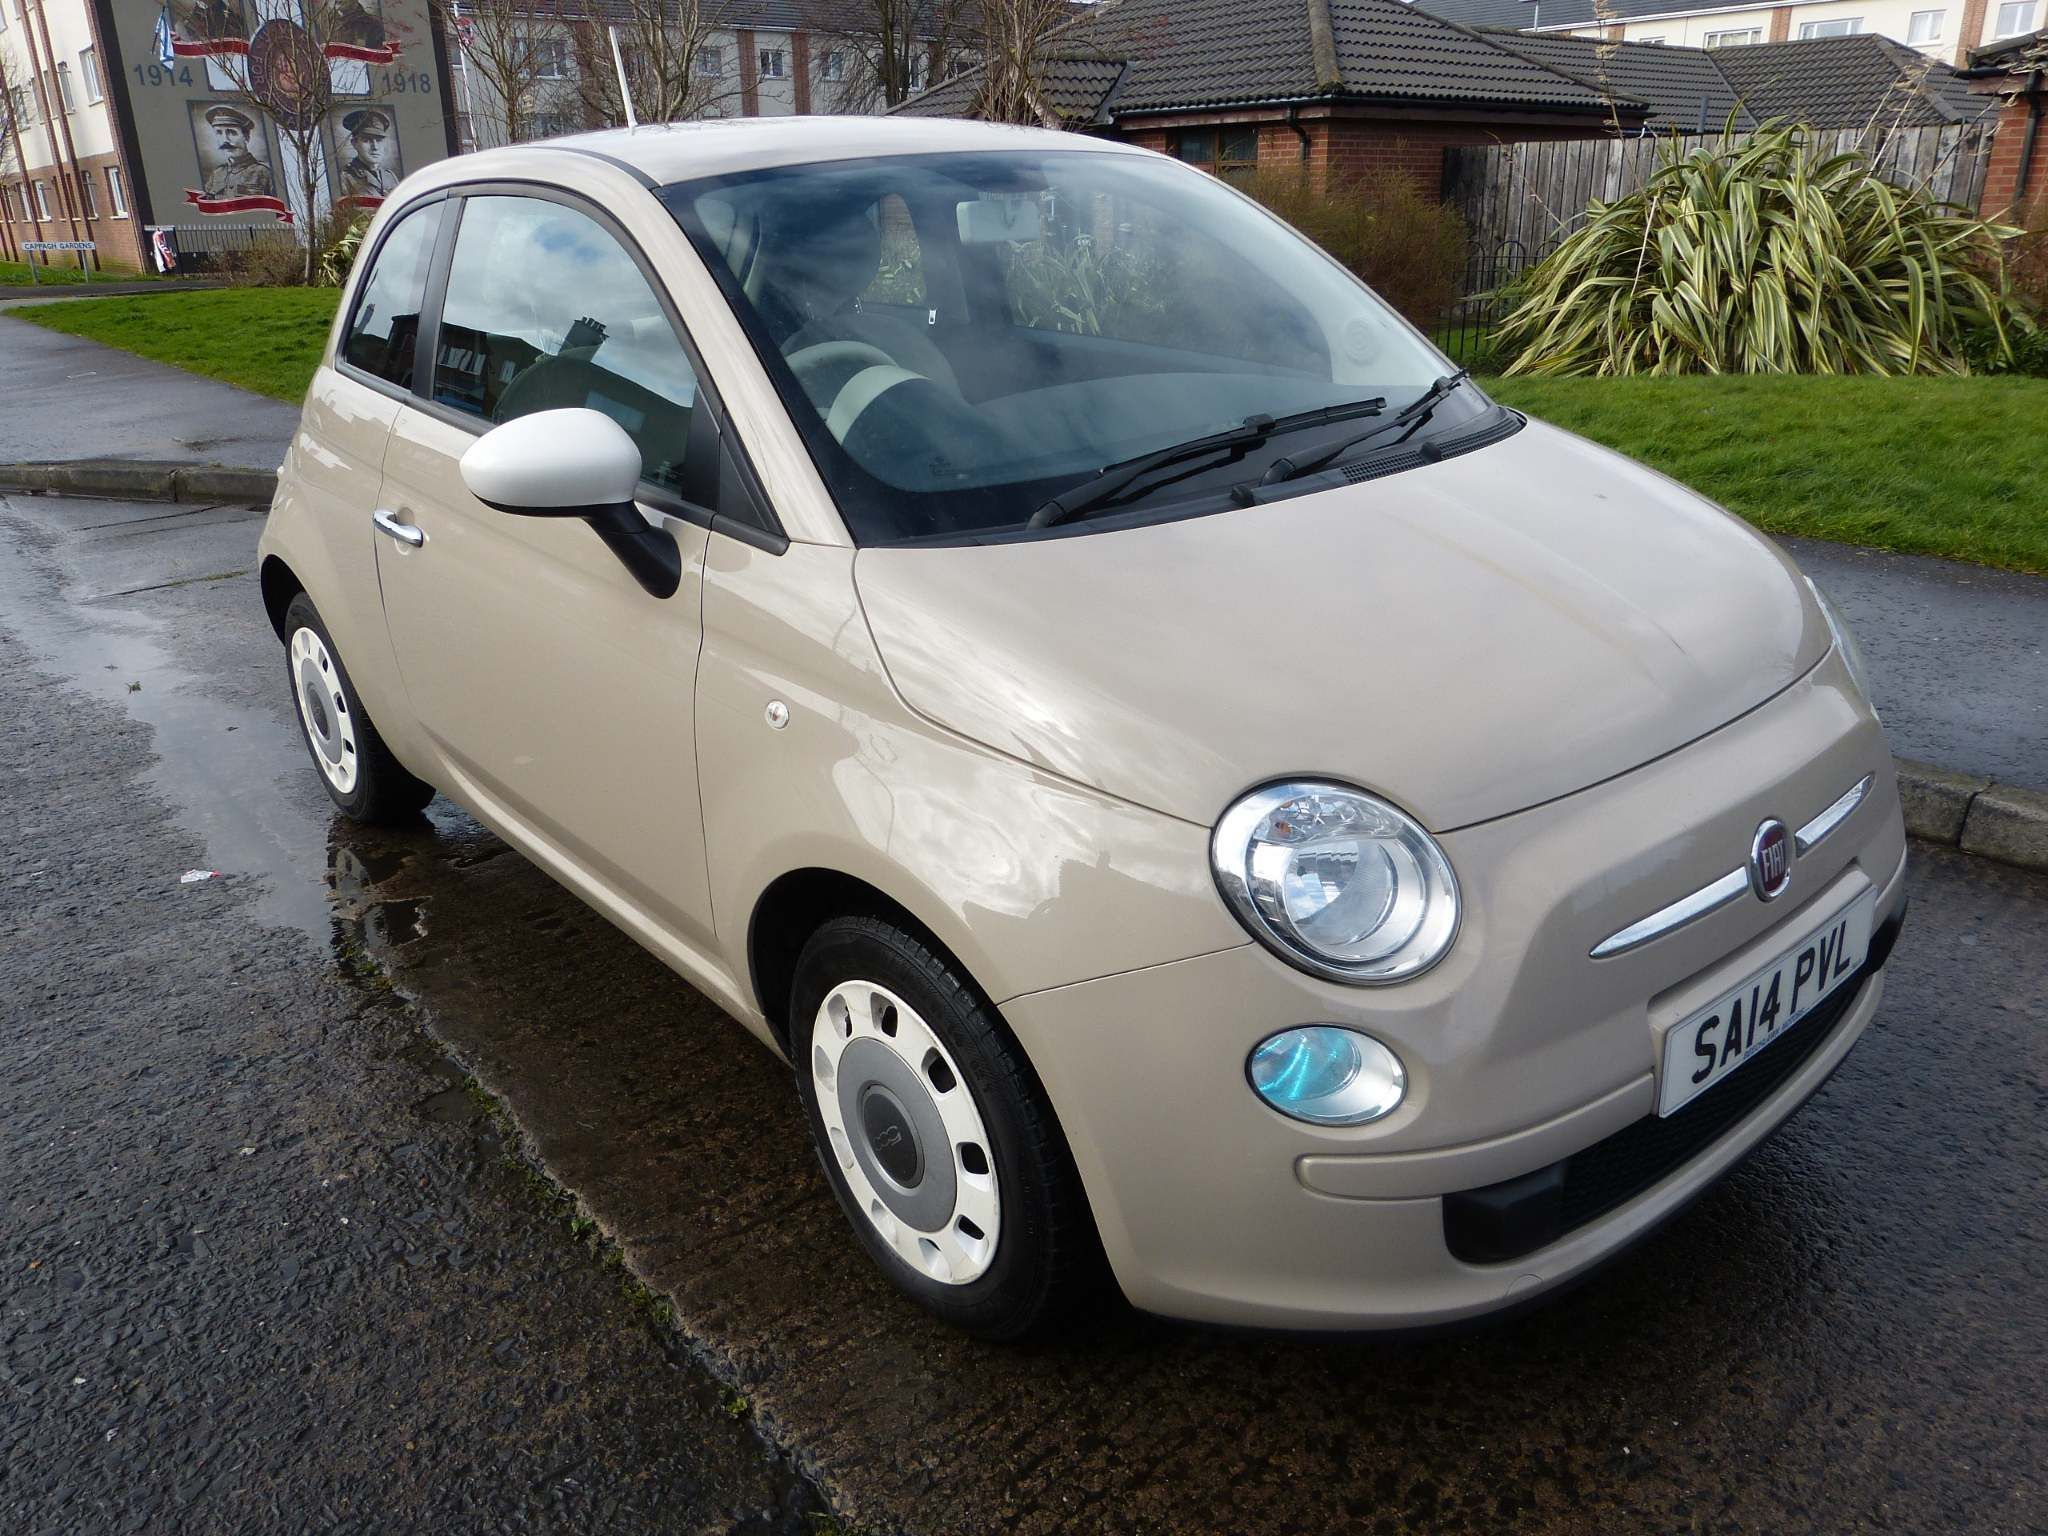 2014 FIAT 500 1.2 Colour Therapy Petrol Manual mot'd to march 2021 – Beechlawn Motors Belfast